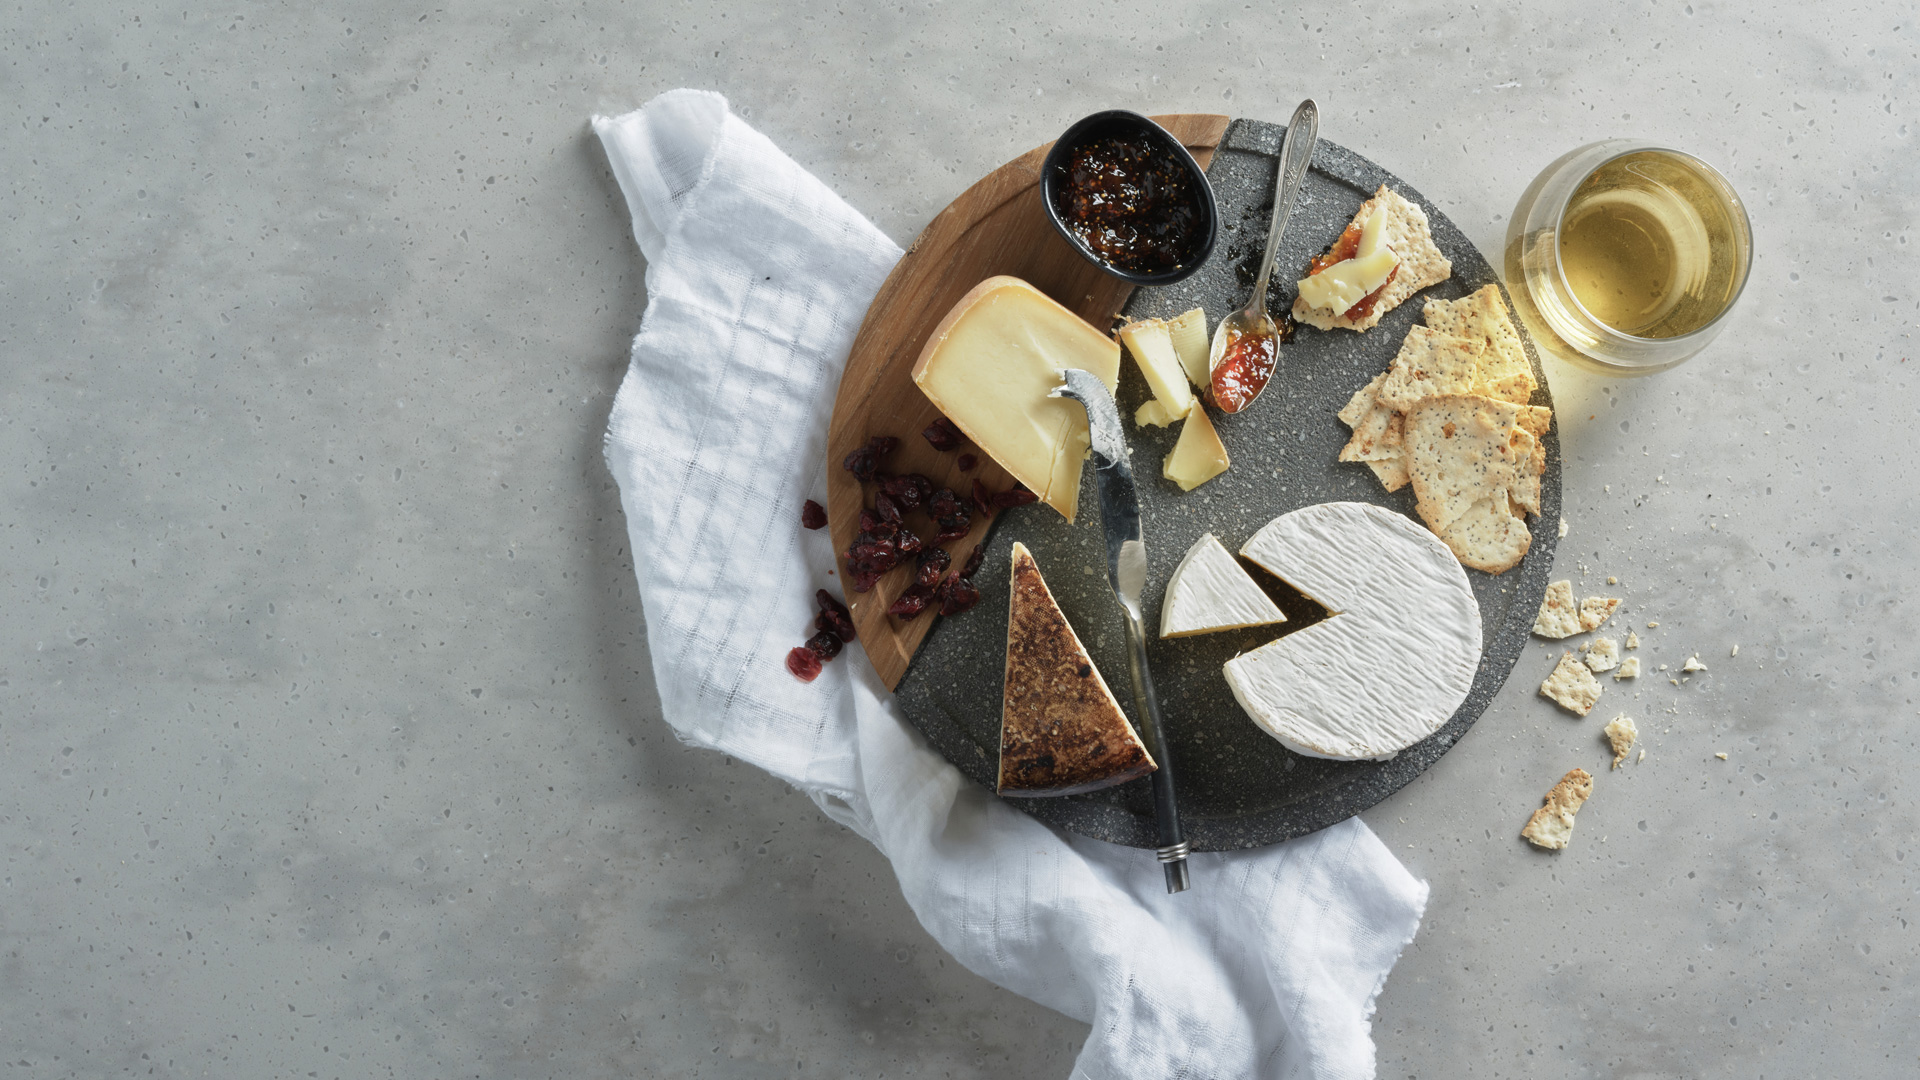 Selection of three cheeses and wine on a sphere grey marble board, with scattered cranberries, crackers, and jam spread in a small bowl with a white napkin on the left side.